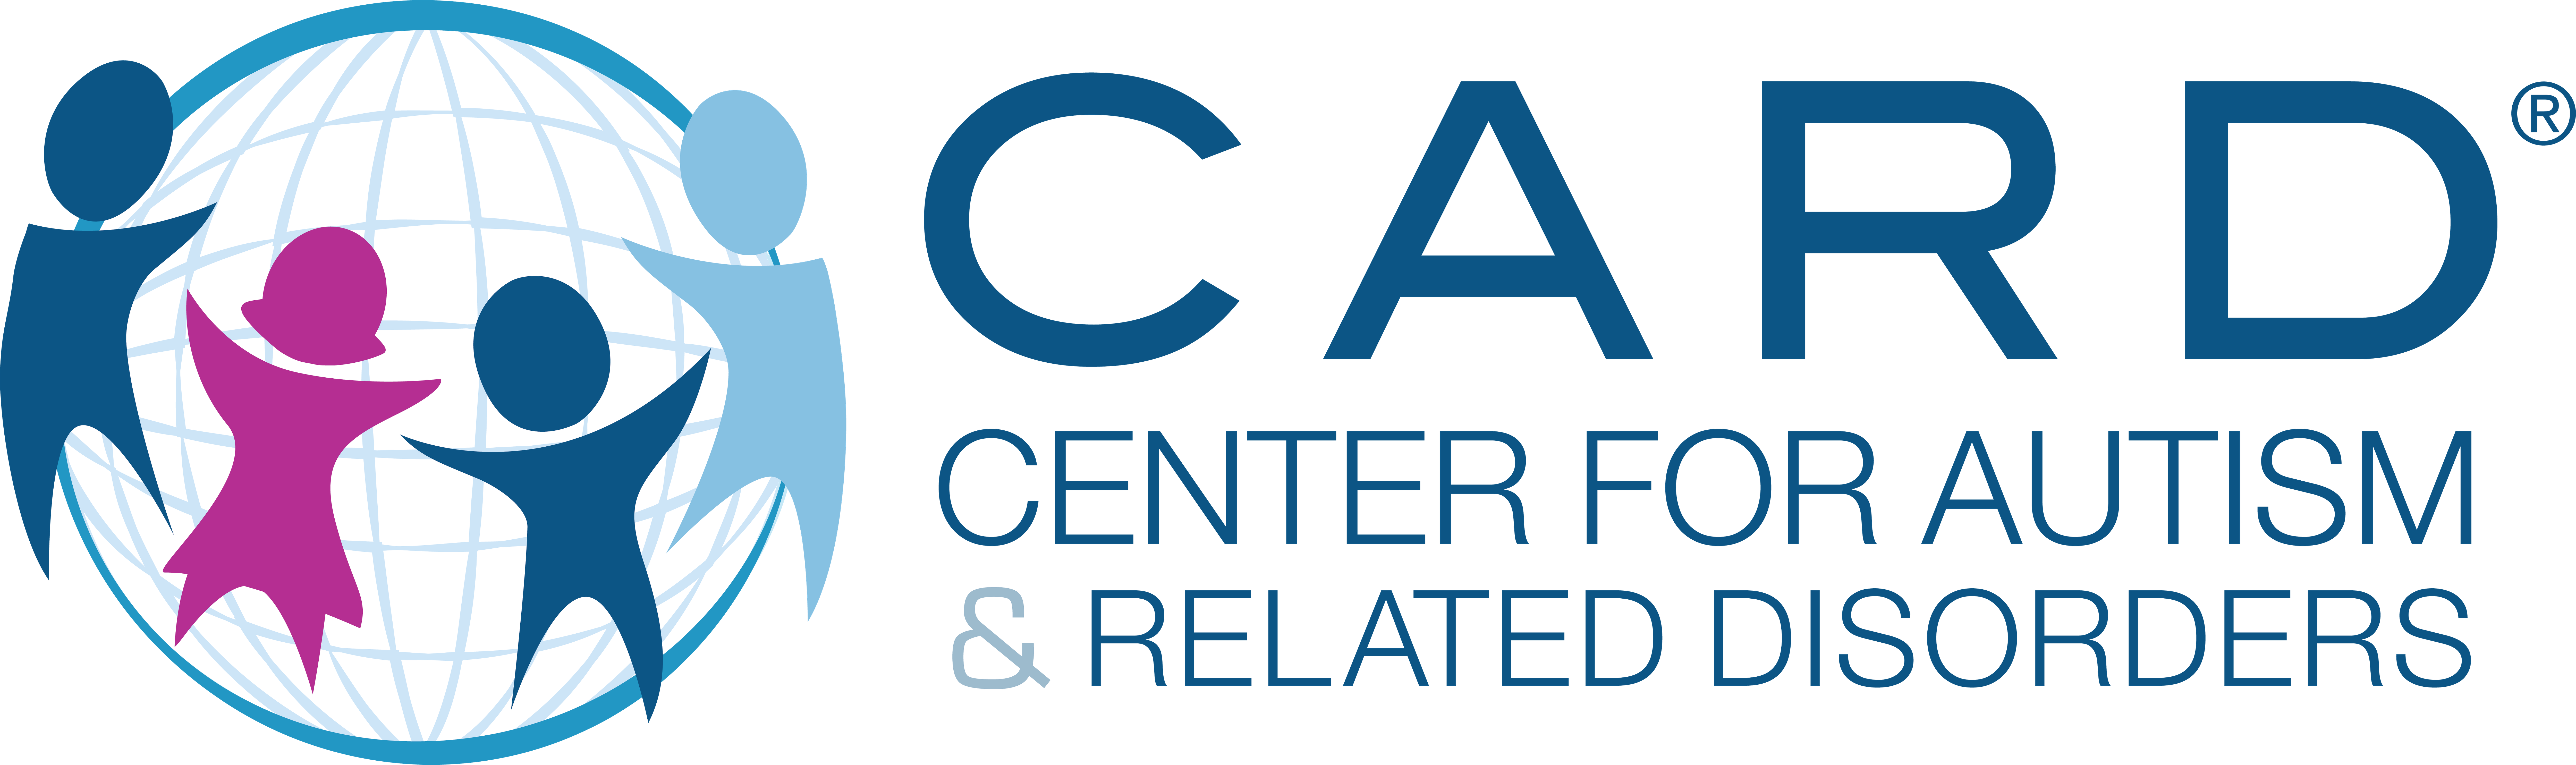 CARD - Center for Autism & Related Disorders